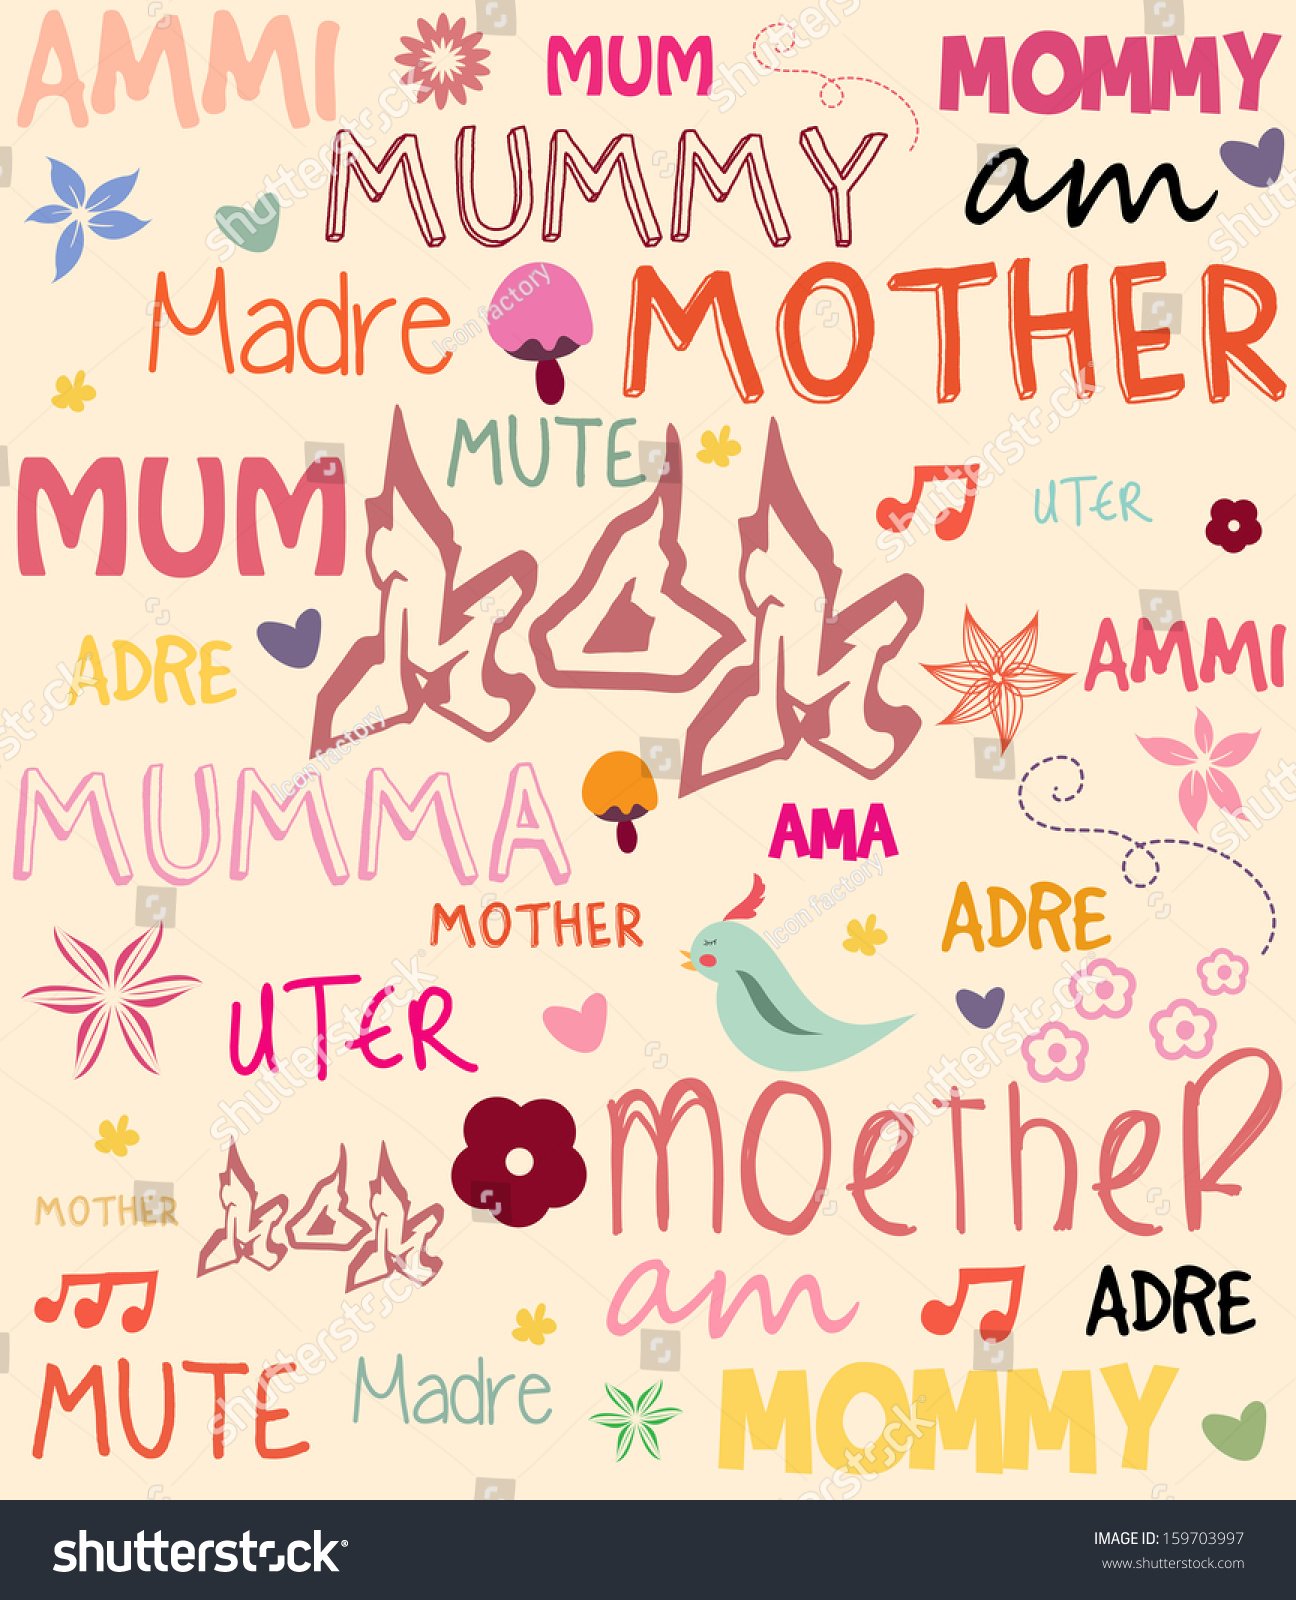 royalty free vector mother s day poster with words 159703997 stock